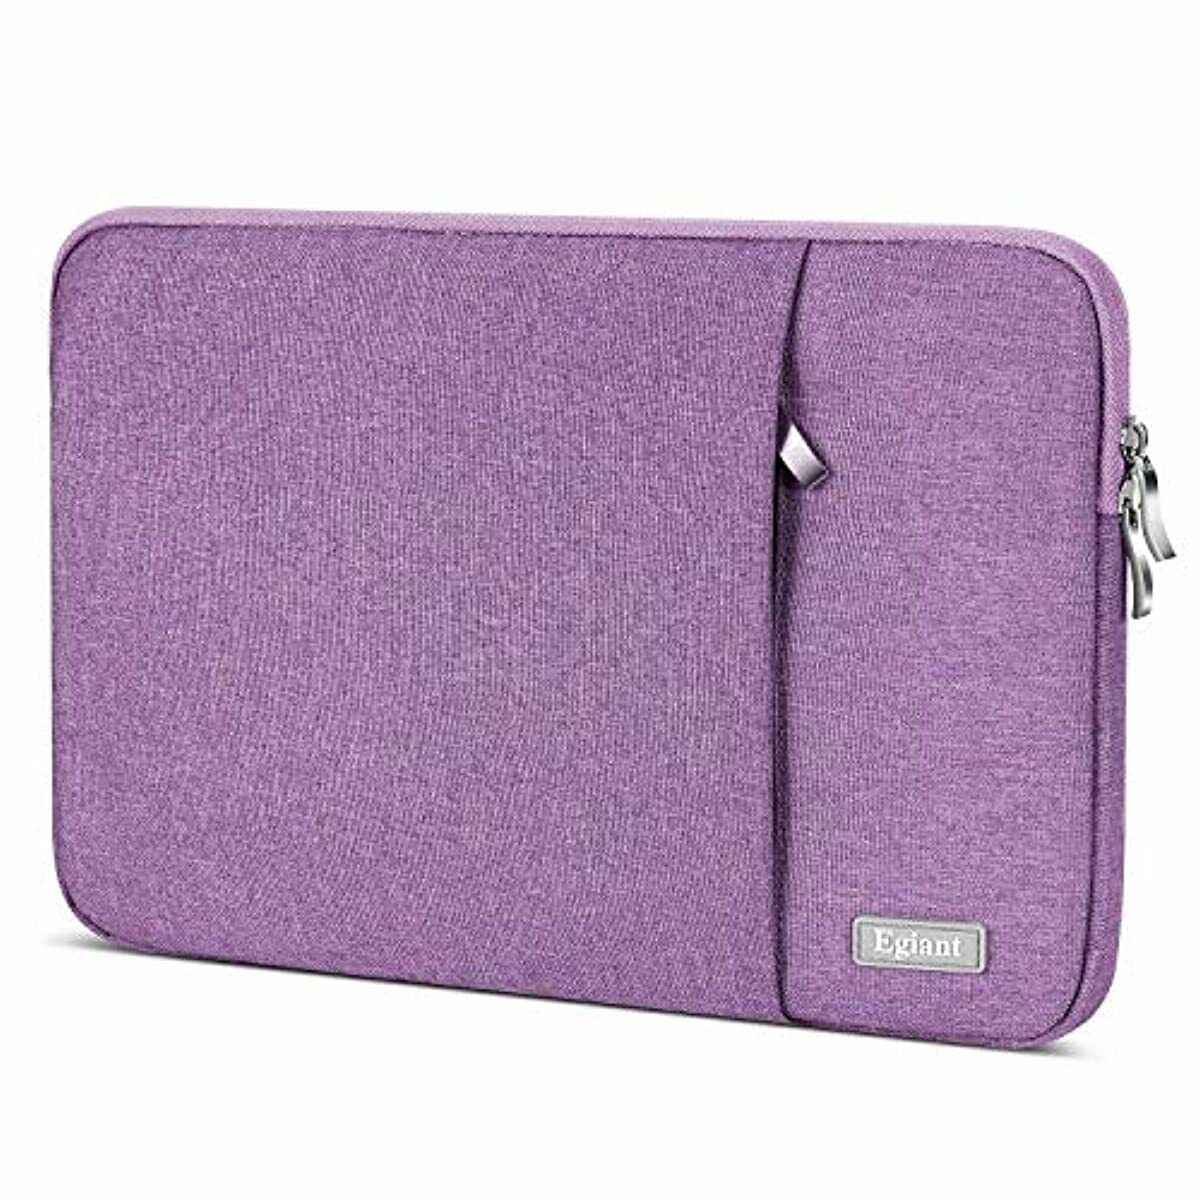 Laptop Sleeve 15.6 Inch,Egiant Water-Repellent Protective Fa